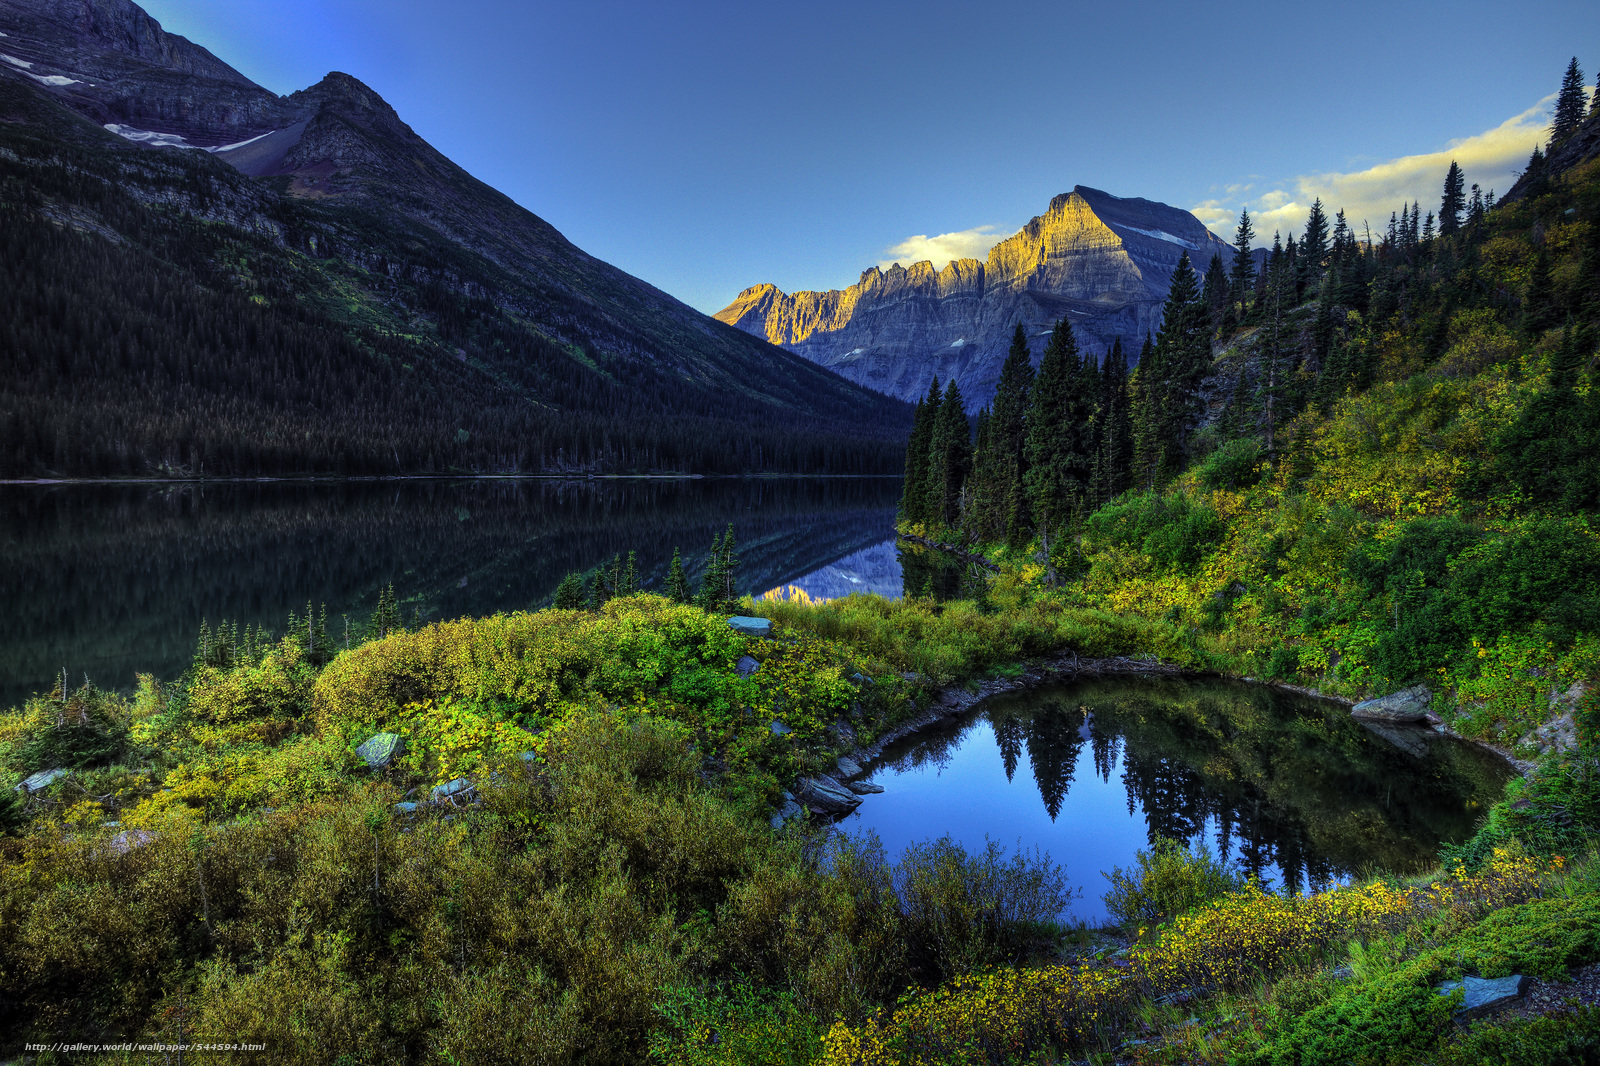 Download wallpaper Glacier National Park lake Mountains trees 1600x1066